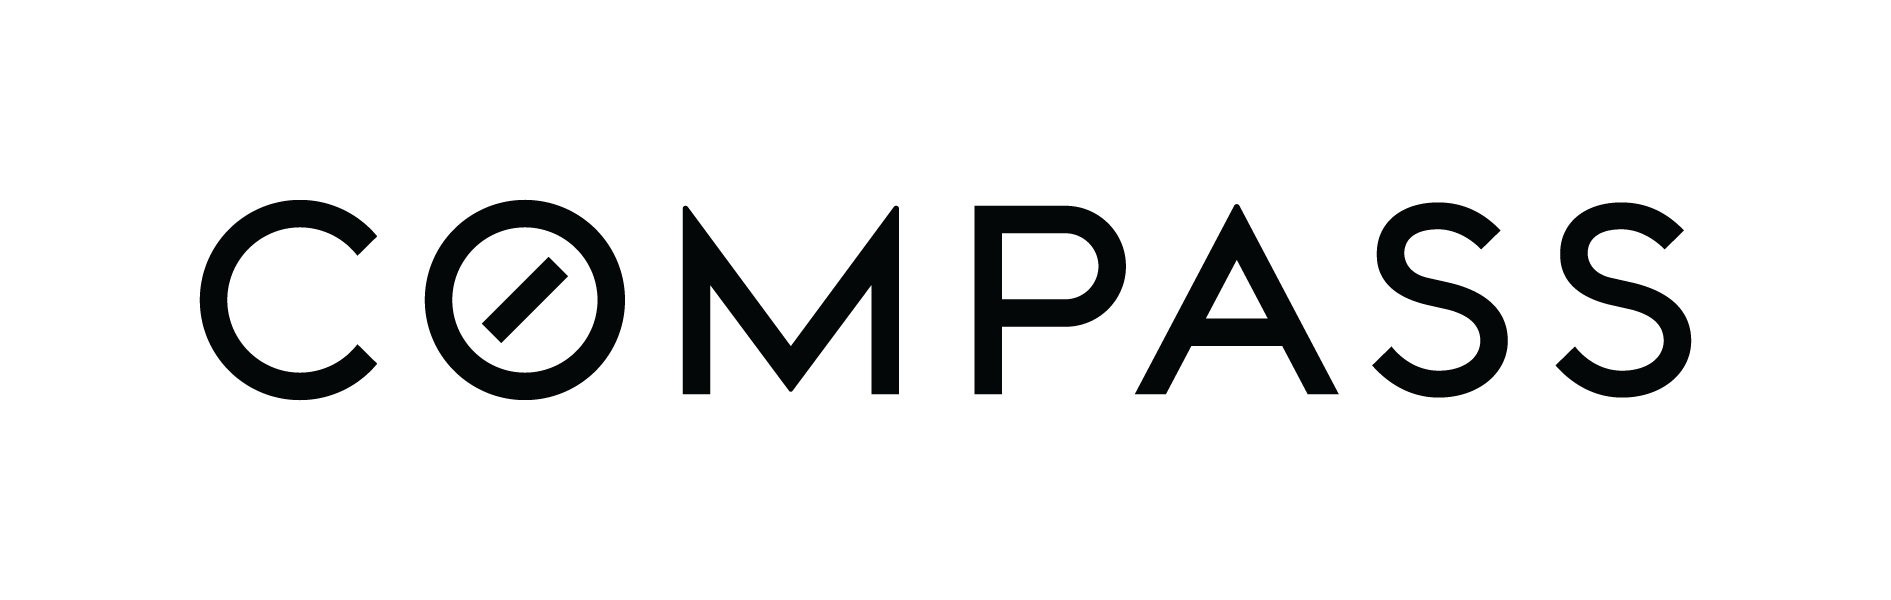 compass_logo_black_transparent (1).png